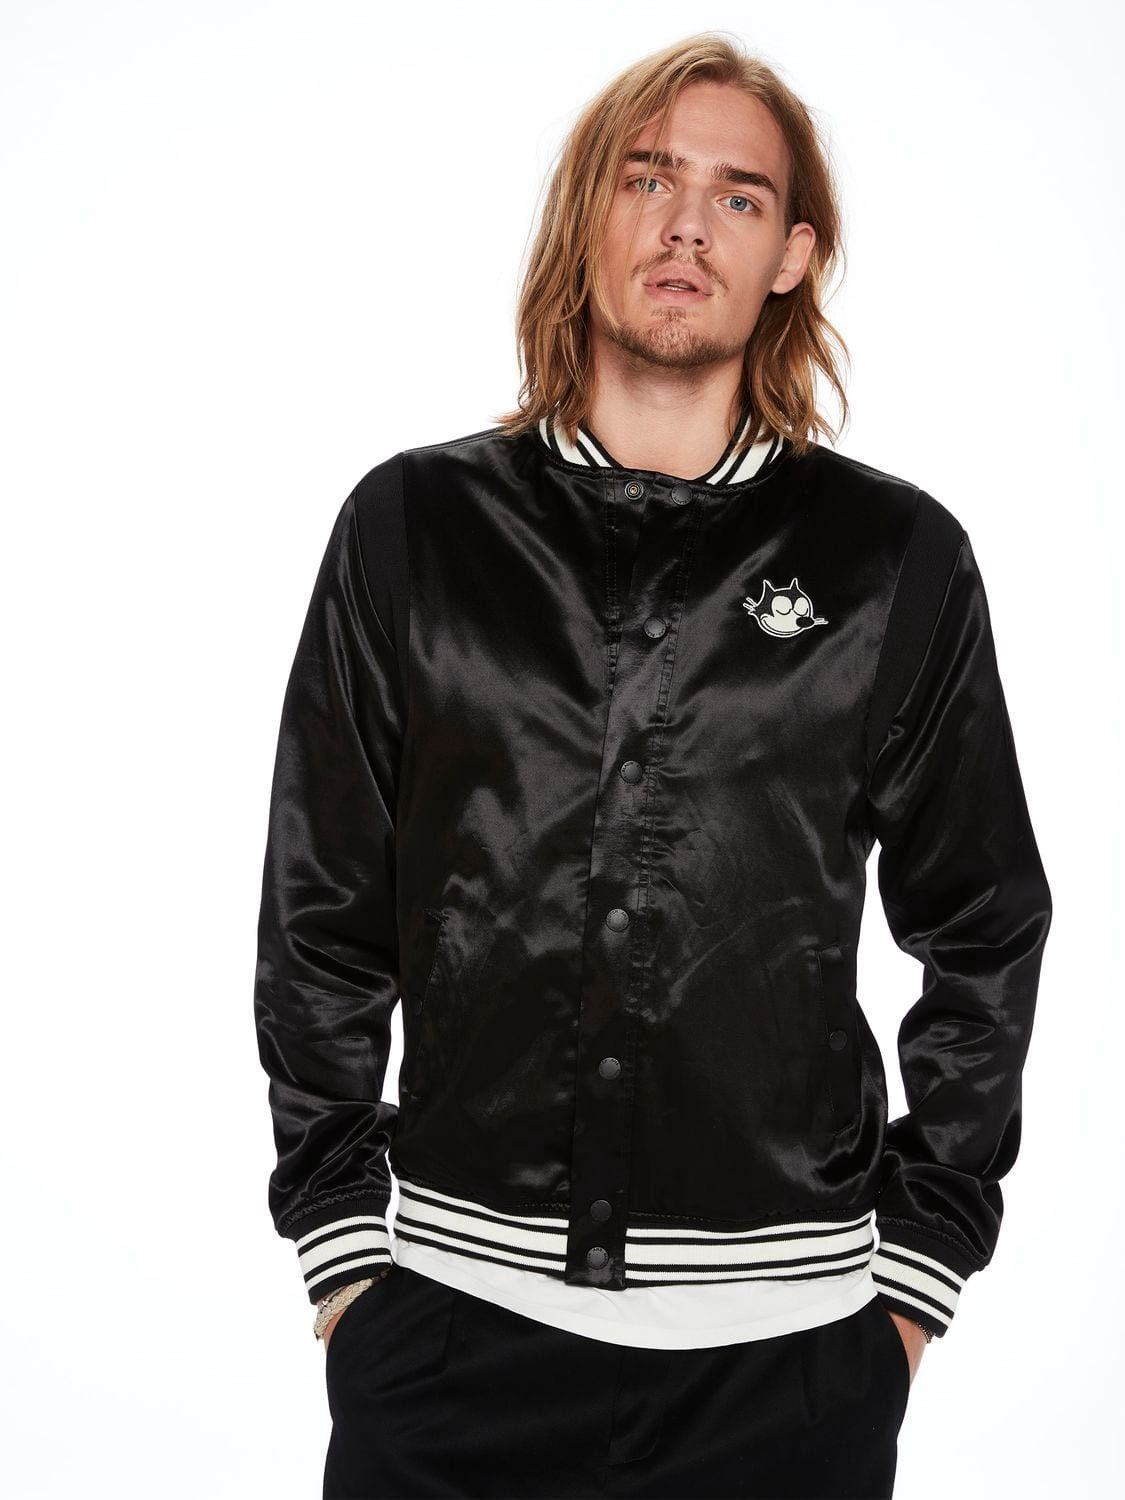 Scotchamp; Felix Soda Bomber The Shiny Artwork Jacket Catscotchsoda BoxdeCr